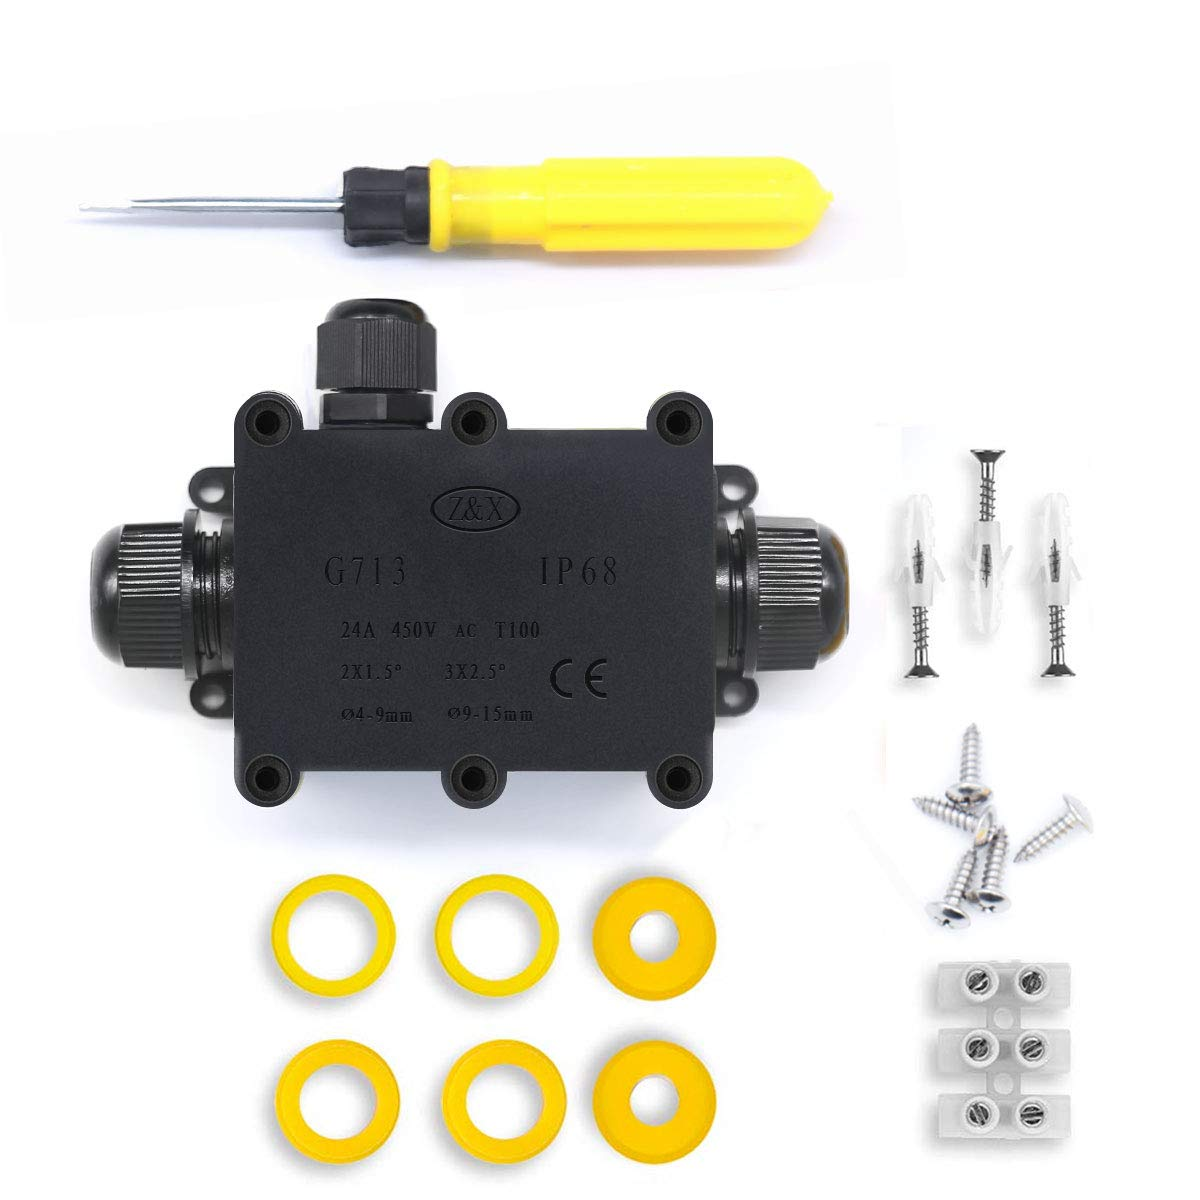 IP68 Waterproof Outdoor 3 Way Gland Electrical Junction Box Clear